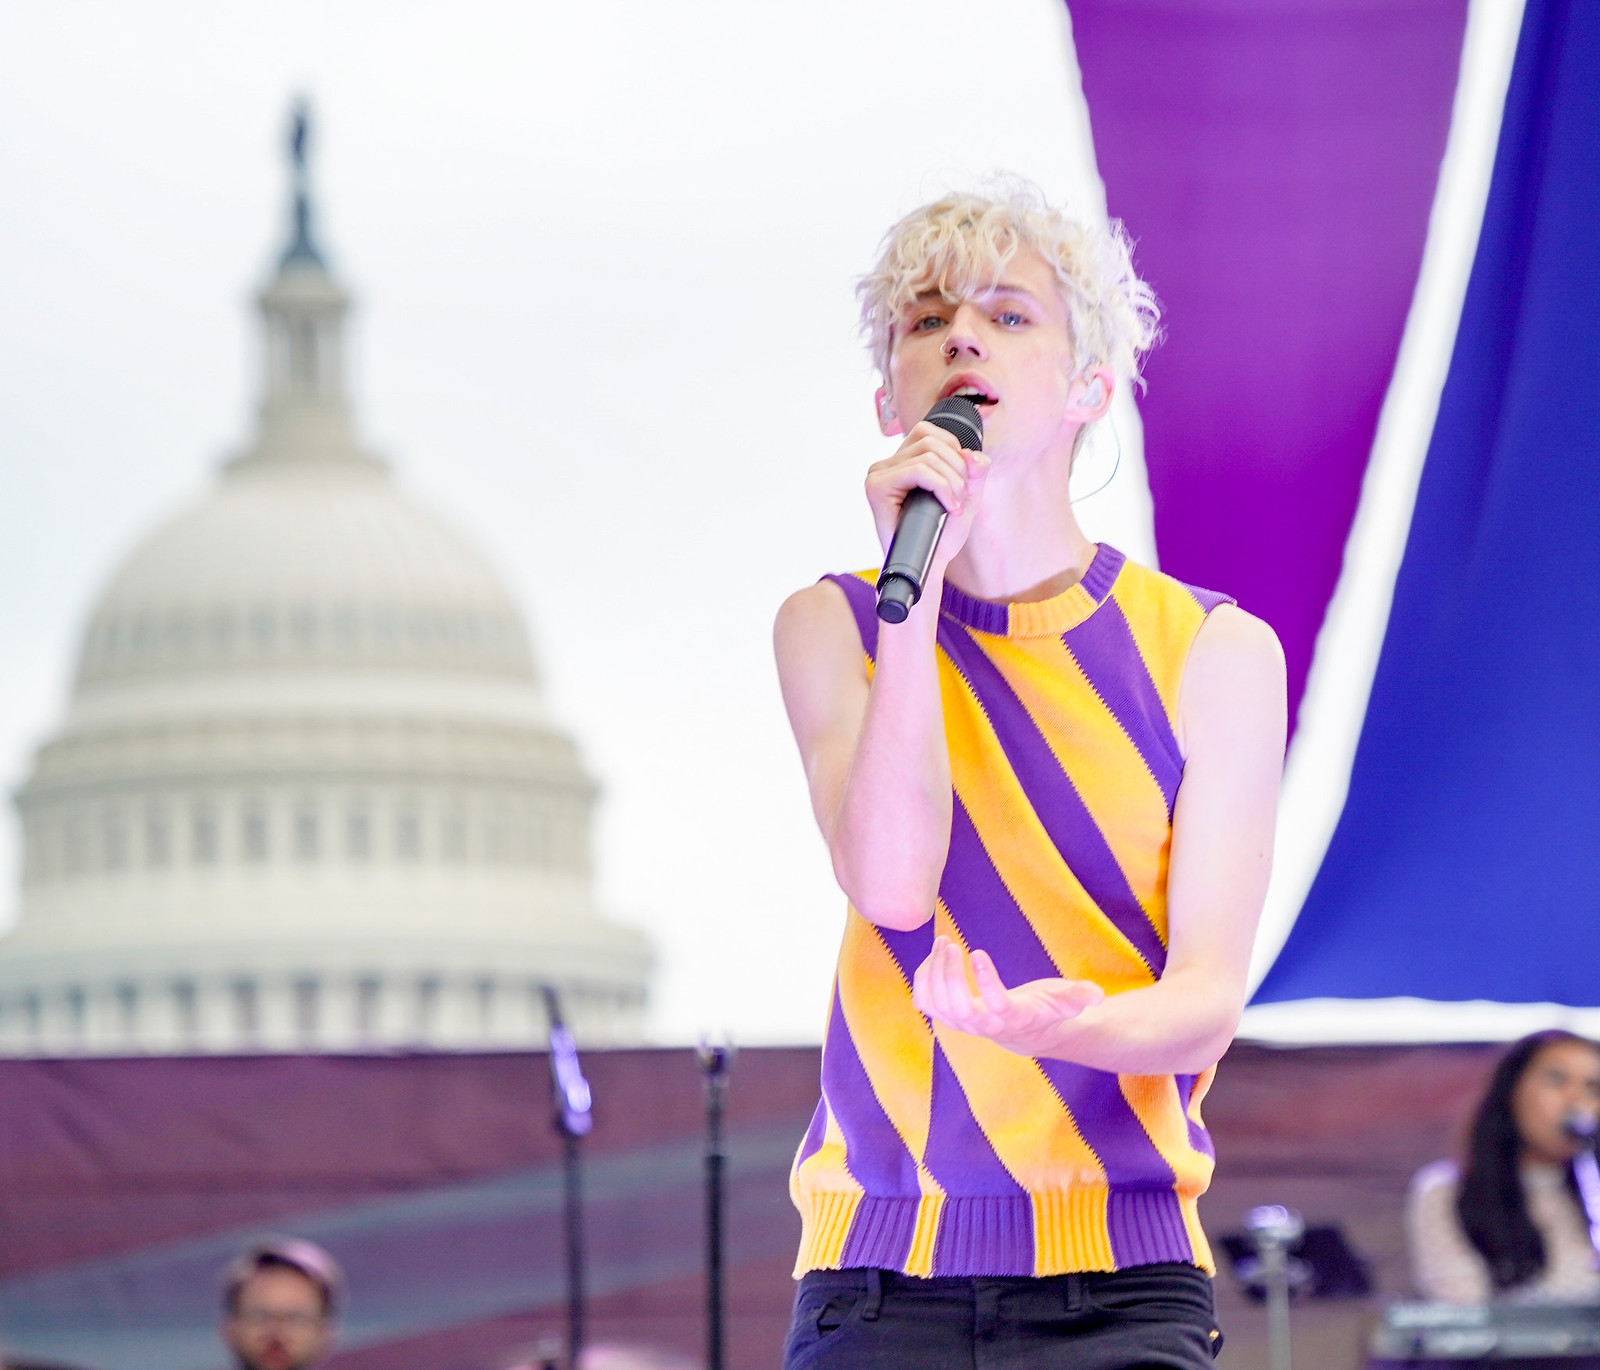 2018.06.10 Troye Sivan at Capital Pride w Sony A7III, Washington, DC USA 03457